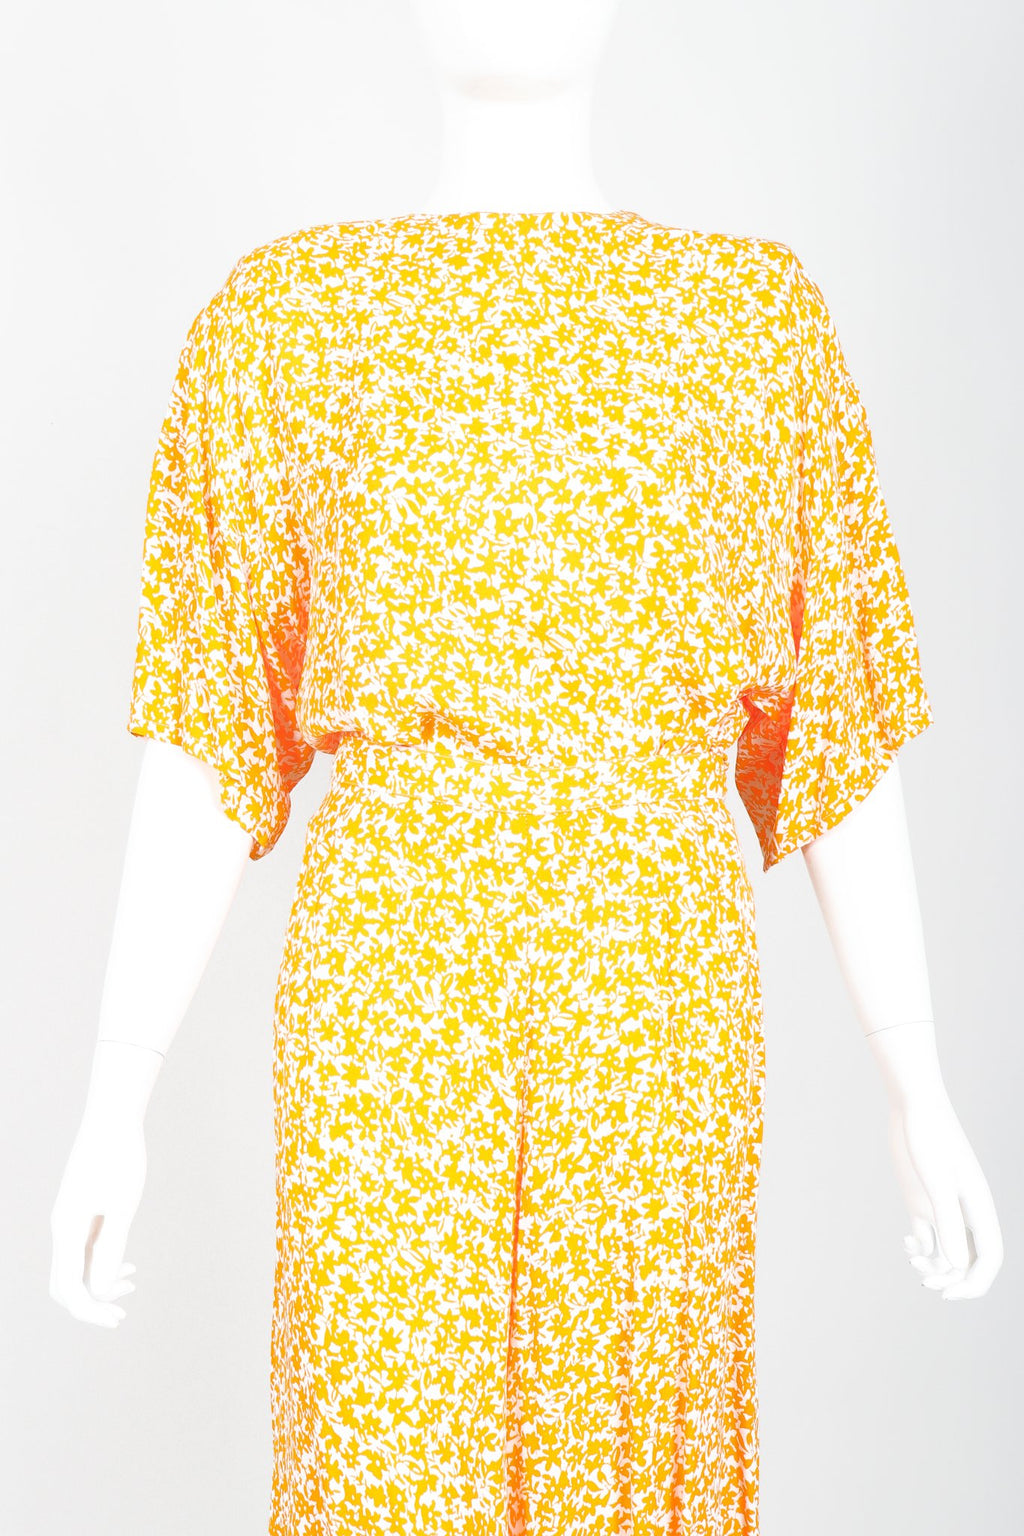 Vintage Sonia Rykiel Graphic Floral Boxy Top and Culotte Set Front Tucked in Crop at Recess